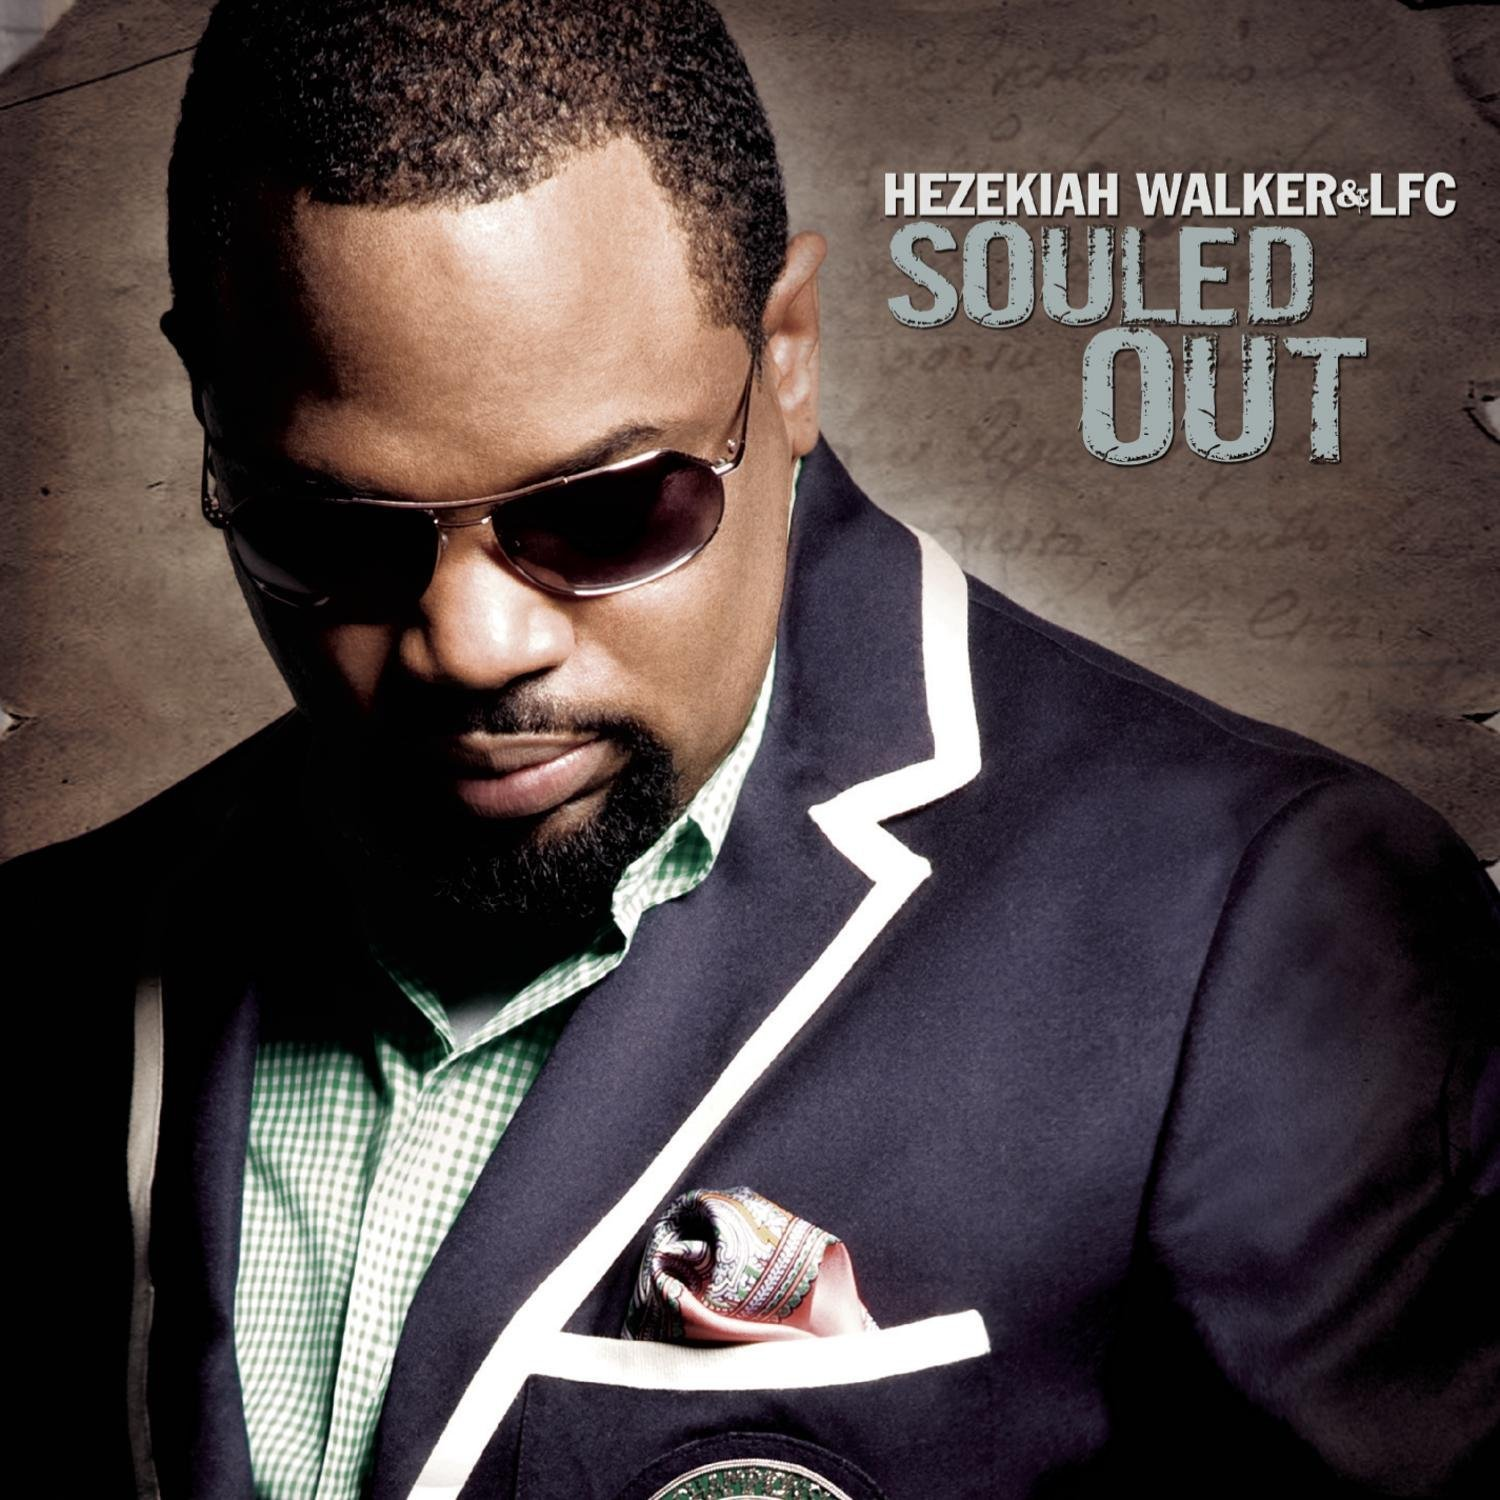 """""""Souled Out""""    """"Keep On Moving On""""   Written by Estee Bullock along with Co-writer Nathan McNair. Souled Out (A featured single) was Billboard's #1 Gospel Song in the country for 2010 and received multiple nominations. Released in 2008."""